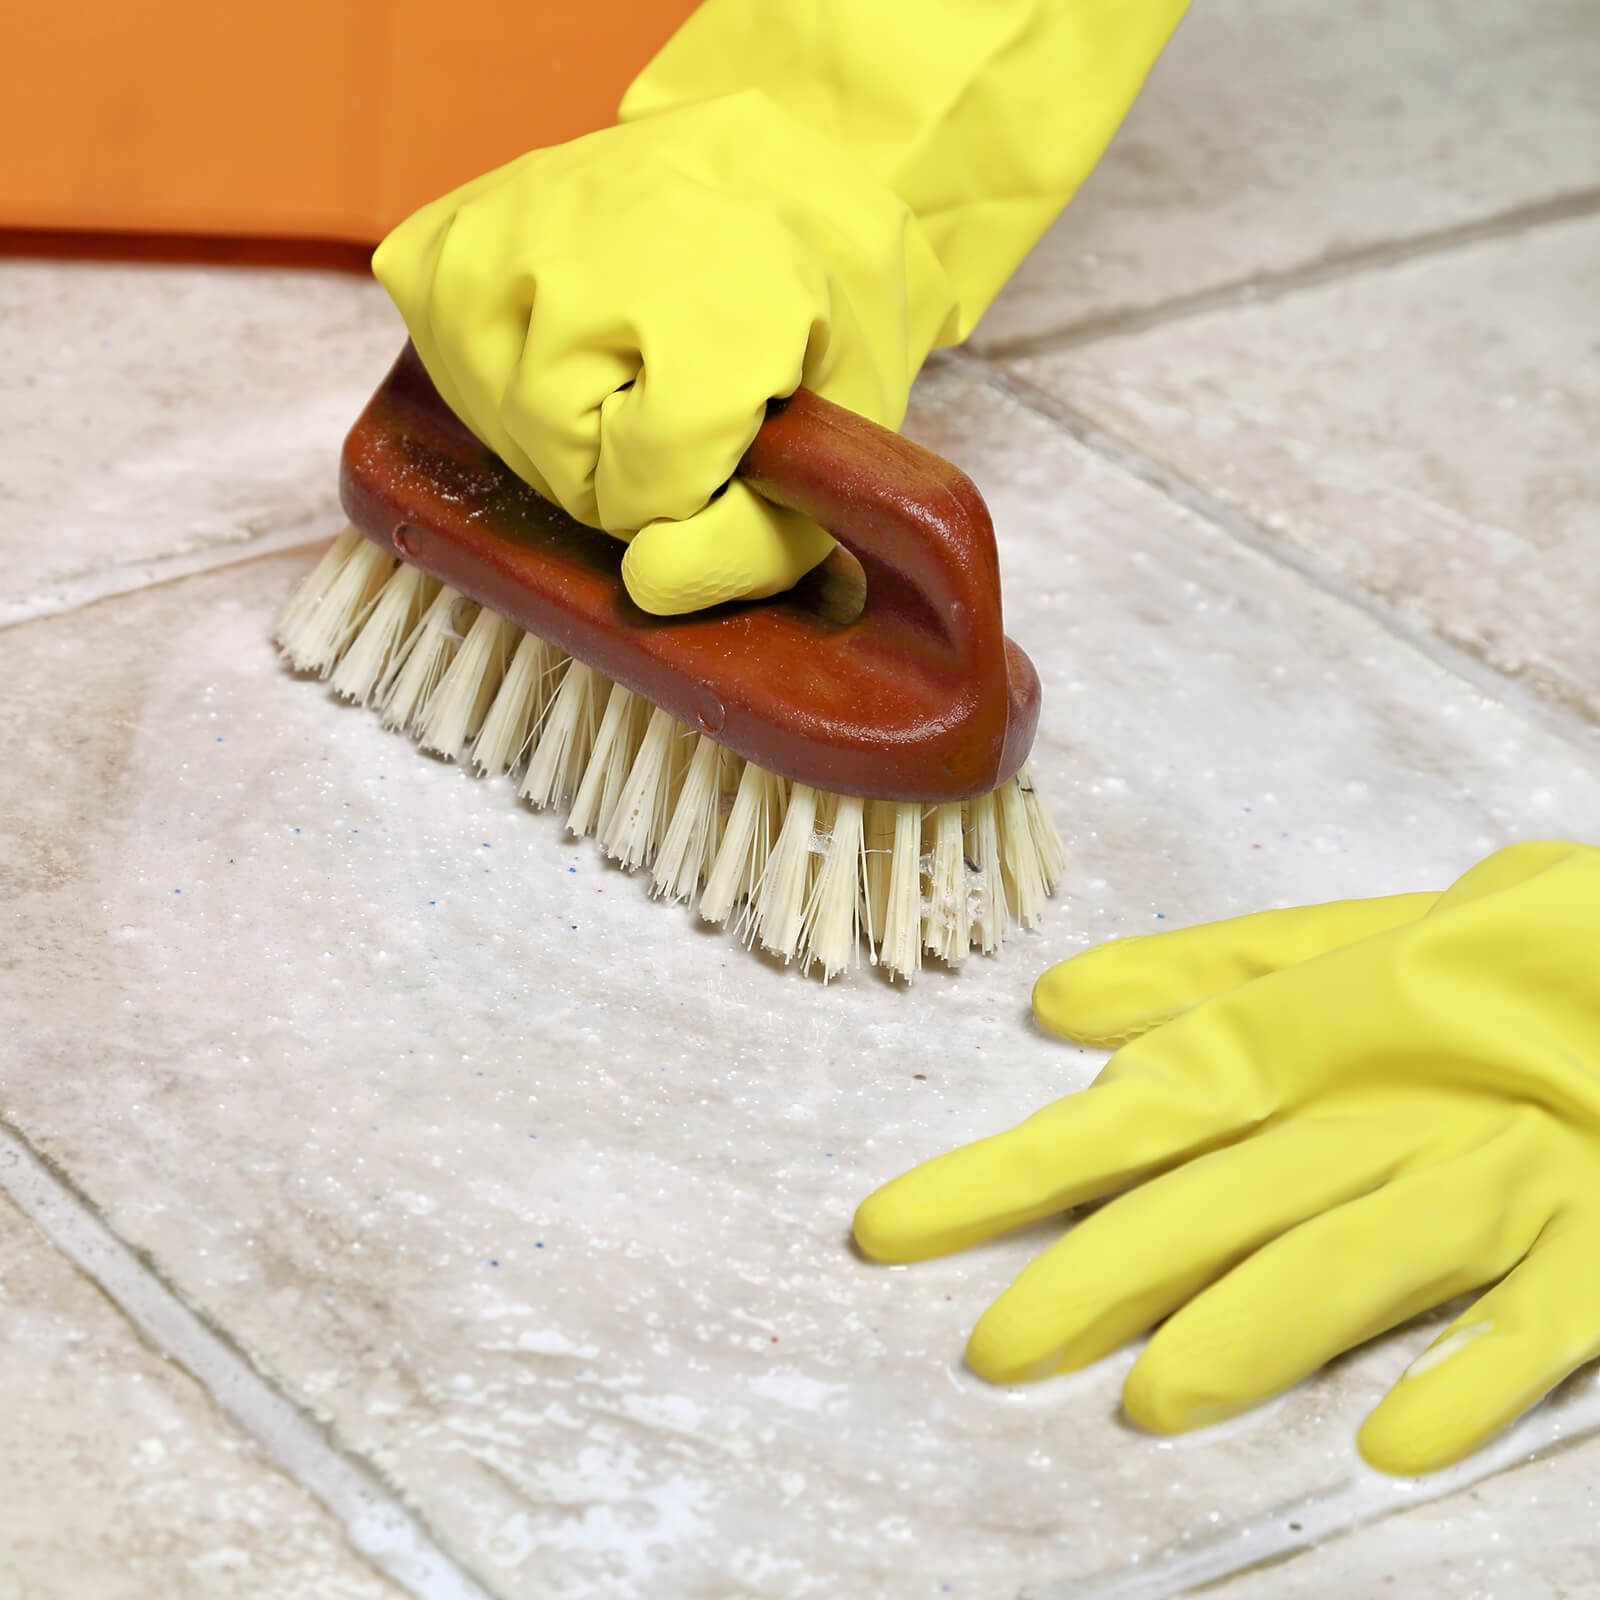 Tile Cleaning with hands | BMG Flooring & Tile Center